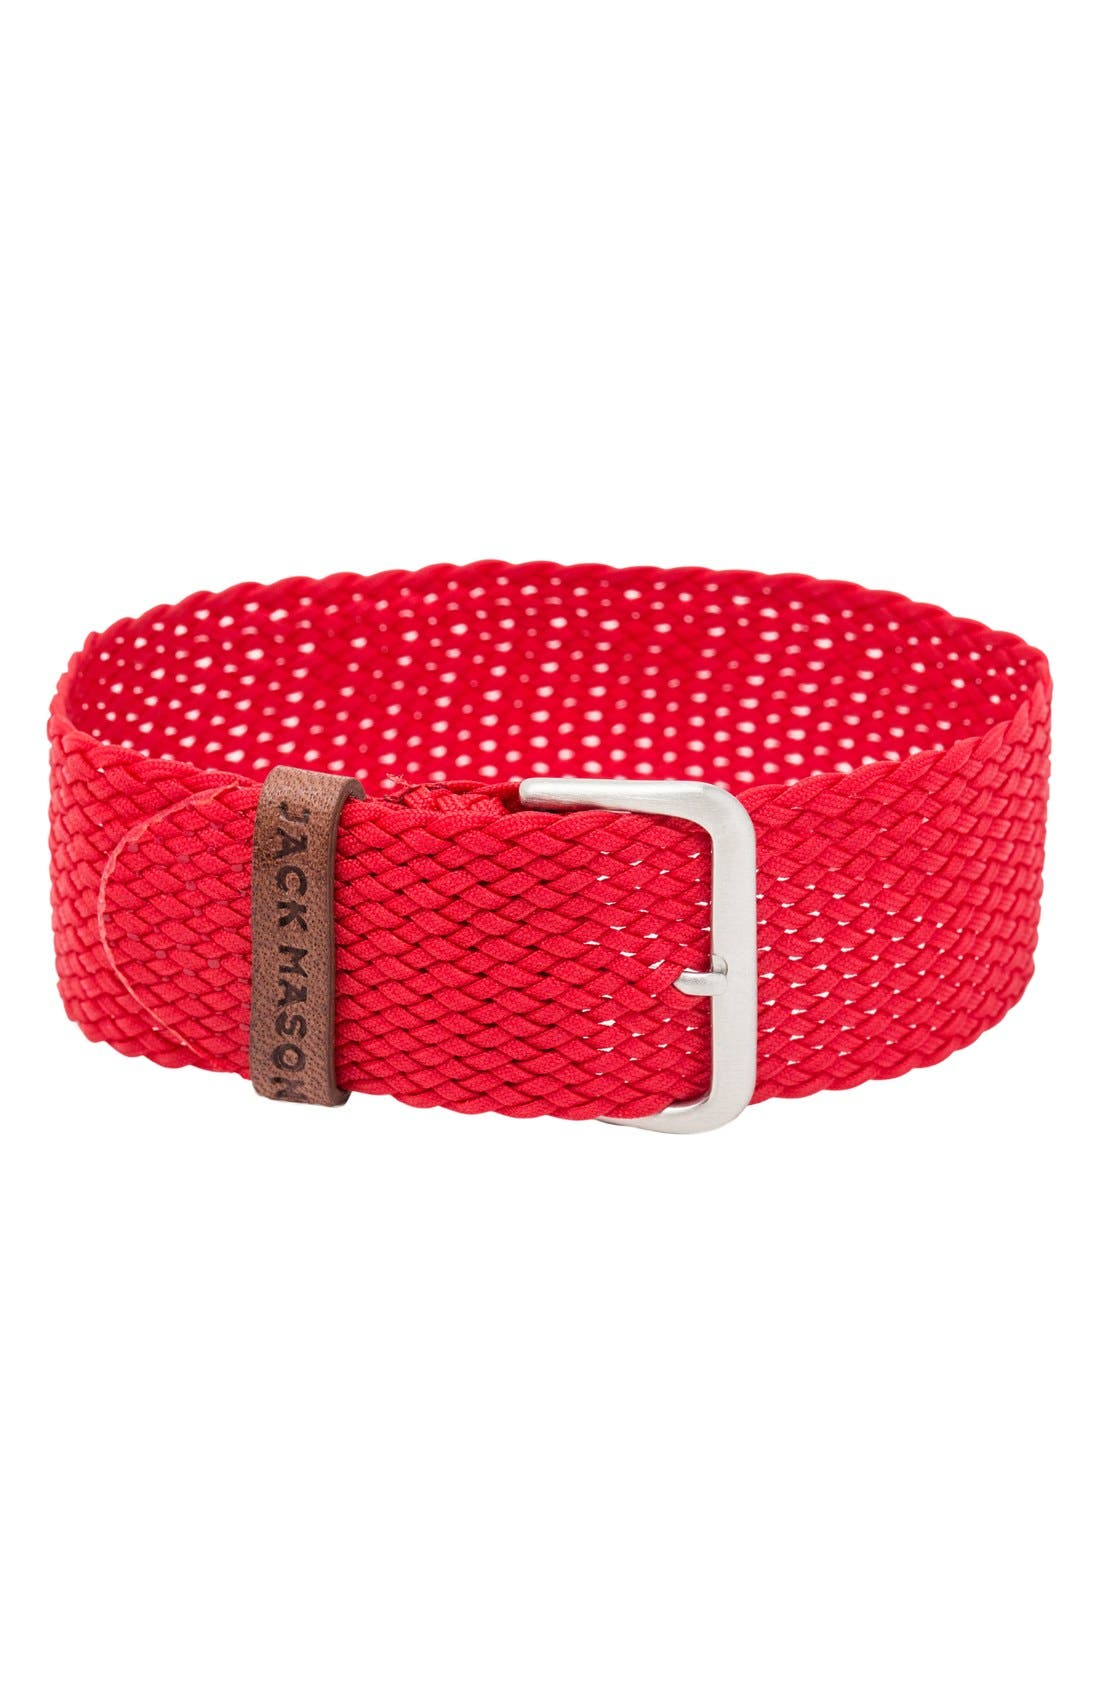 Nylon Strap with Leather Keeper, 22mm,                             Alternate thumbnail 2, color,                             Red